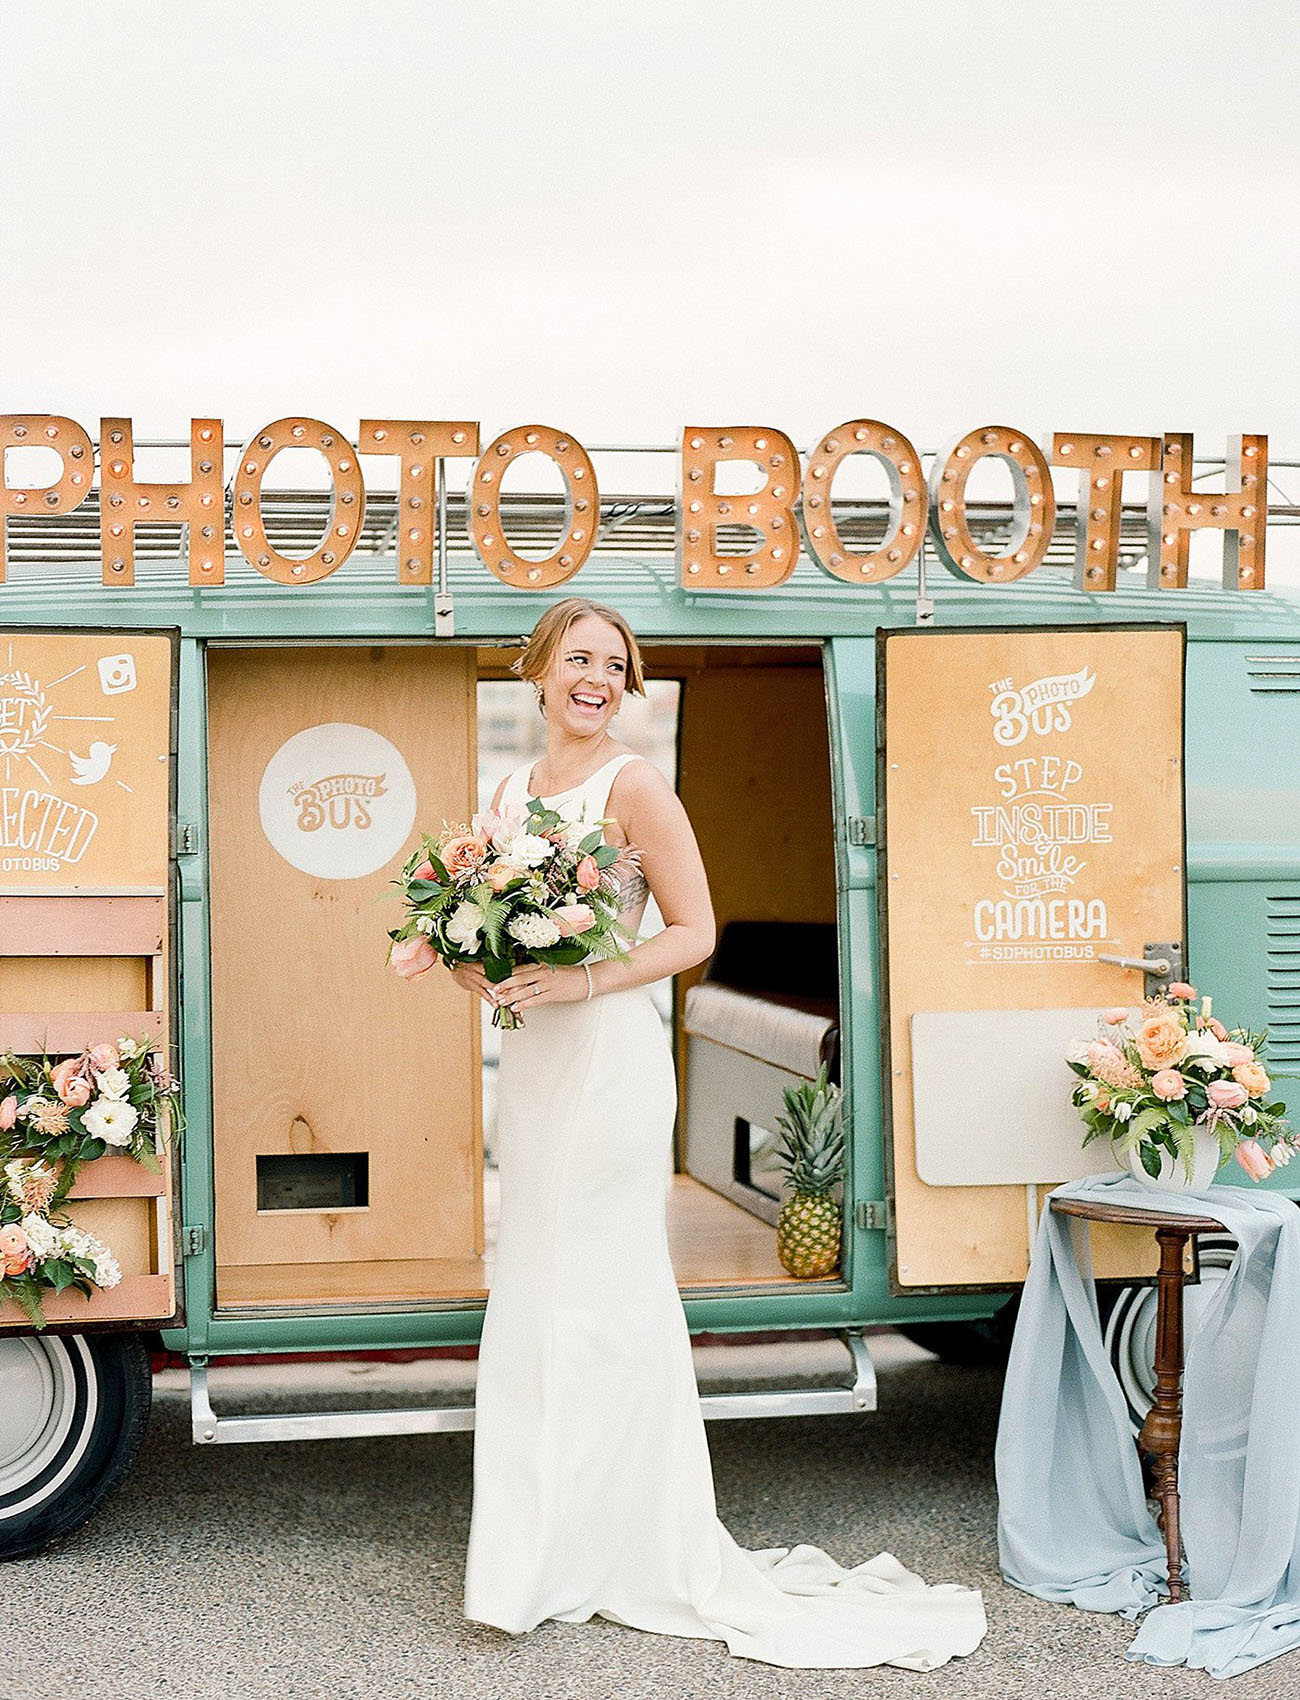 VW bus bride